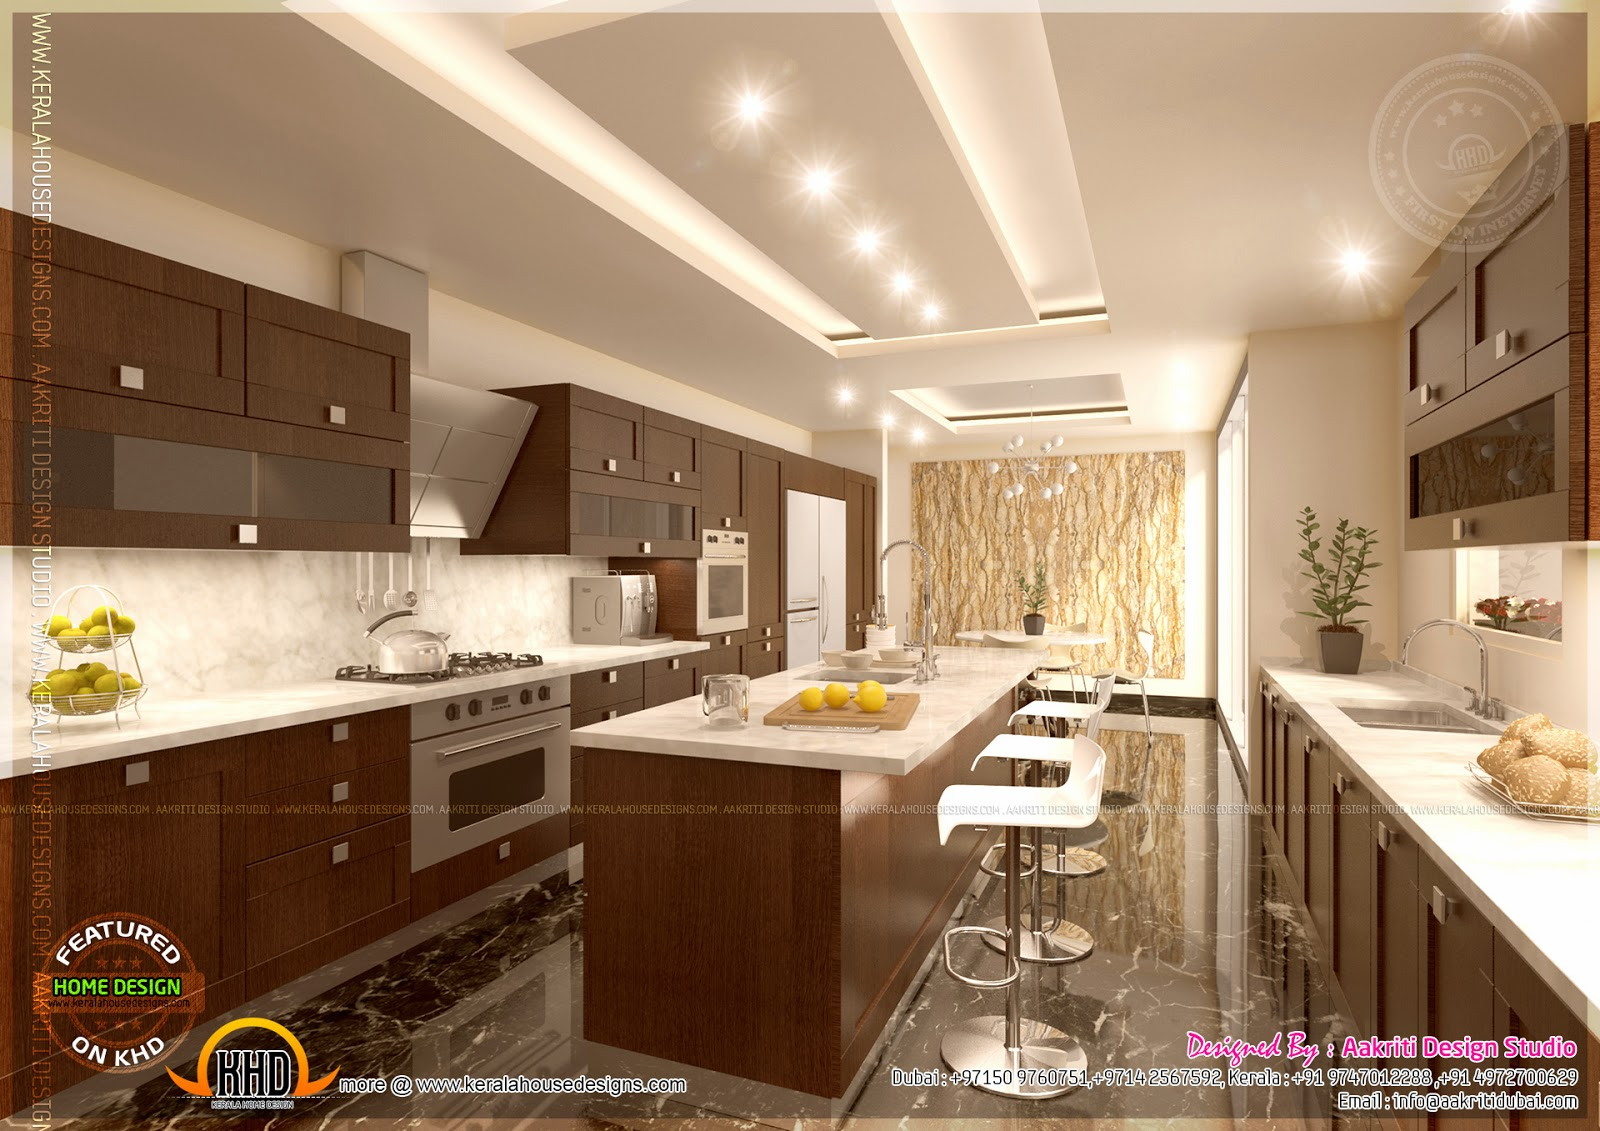 Kitchen designs by aakriti design studio kerala home for Home kitchen design ideas